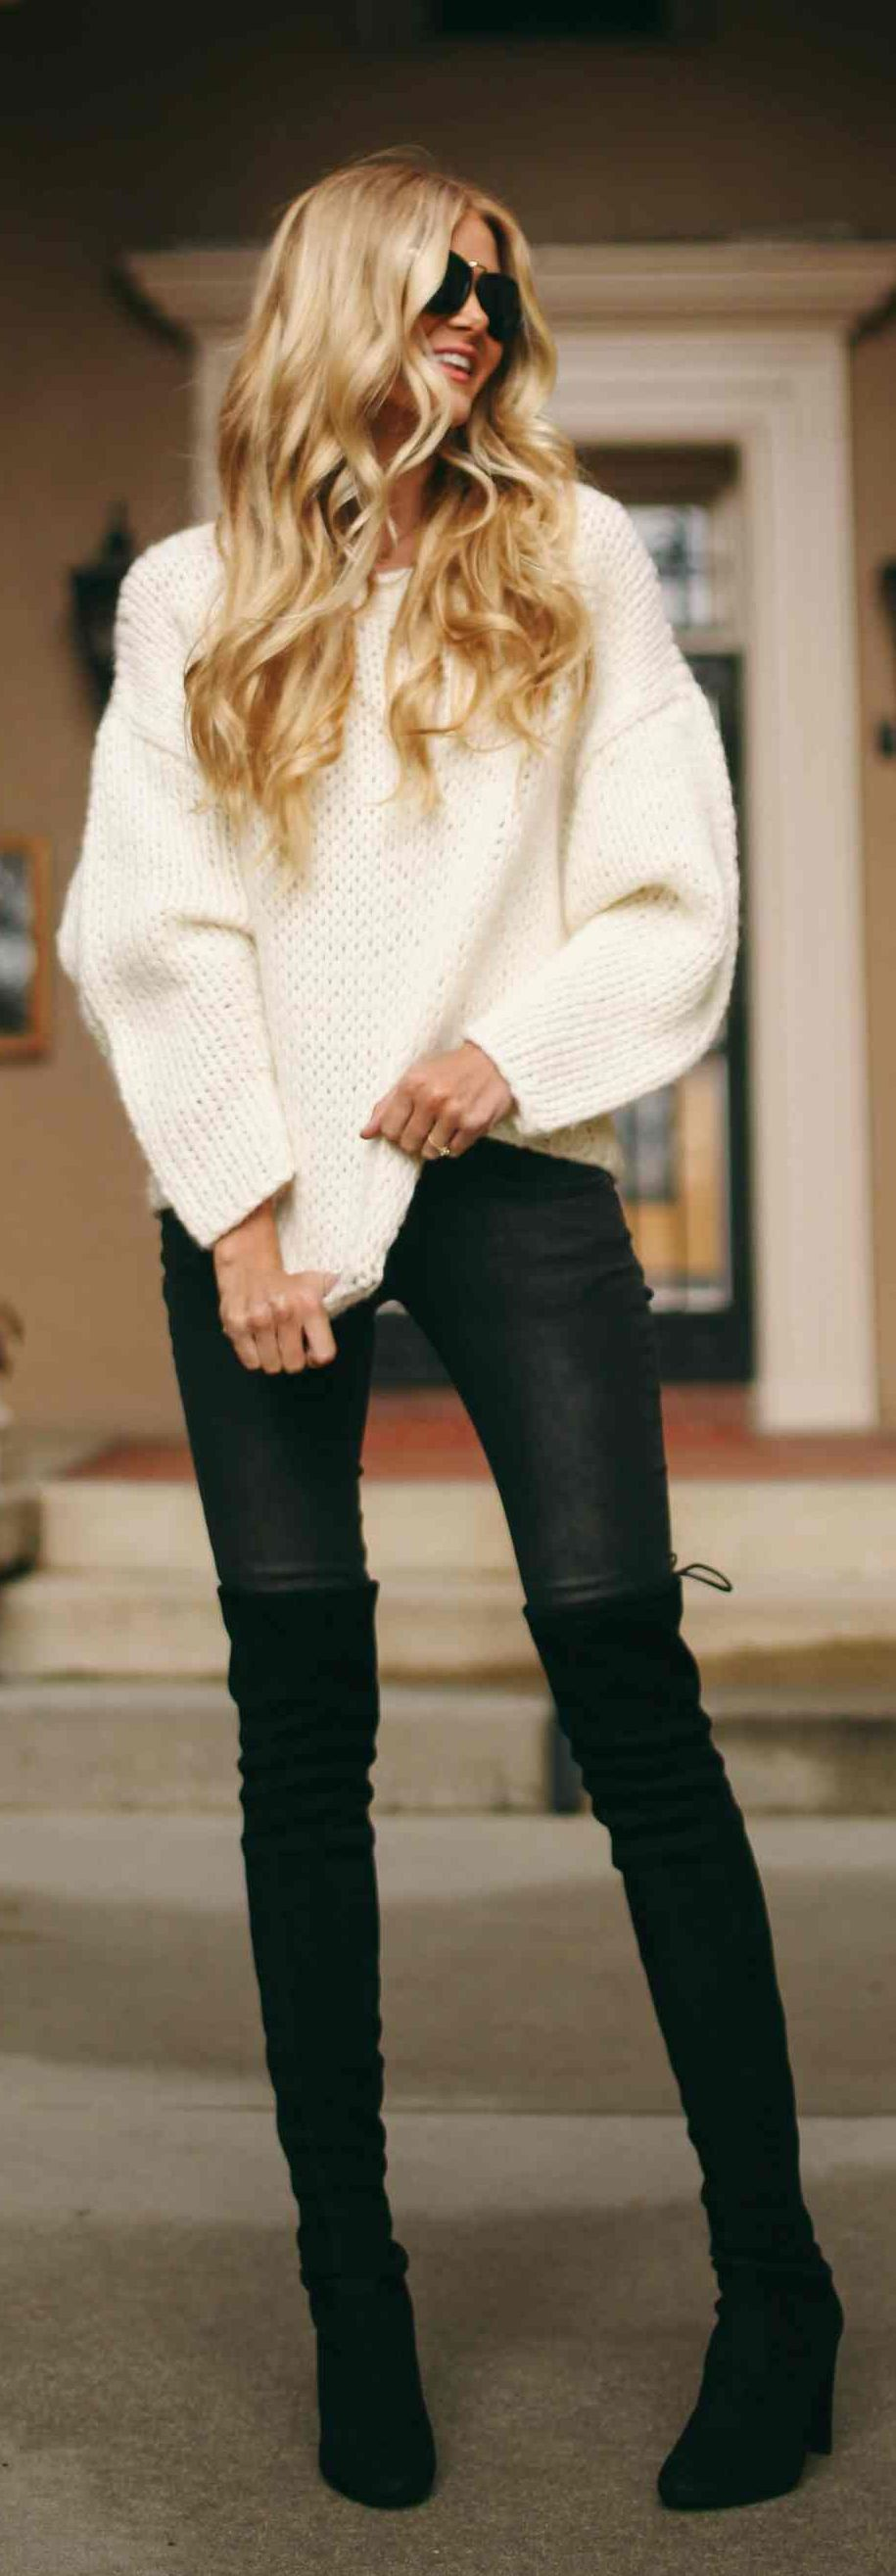 Click here to see recommendations for over the knee high heeled boots: http://www.slant.co/topics/4522/~over-the-knee-high-heeled-boots